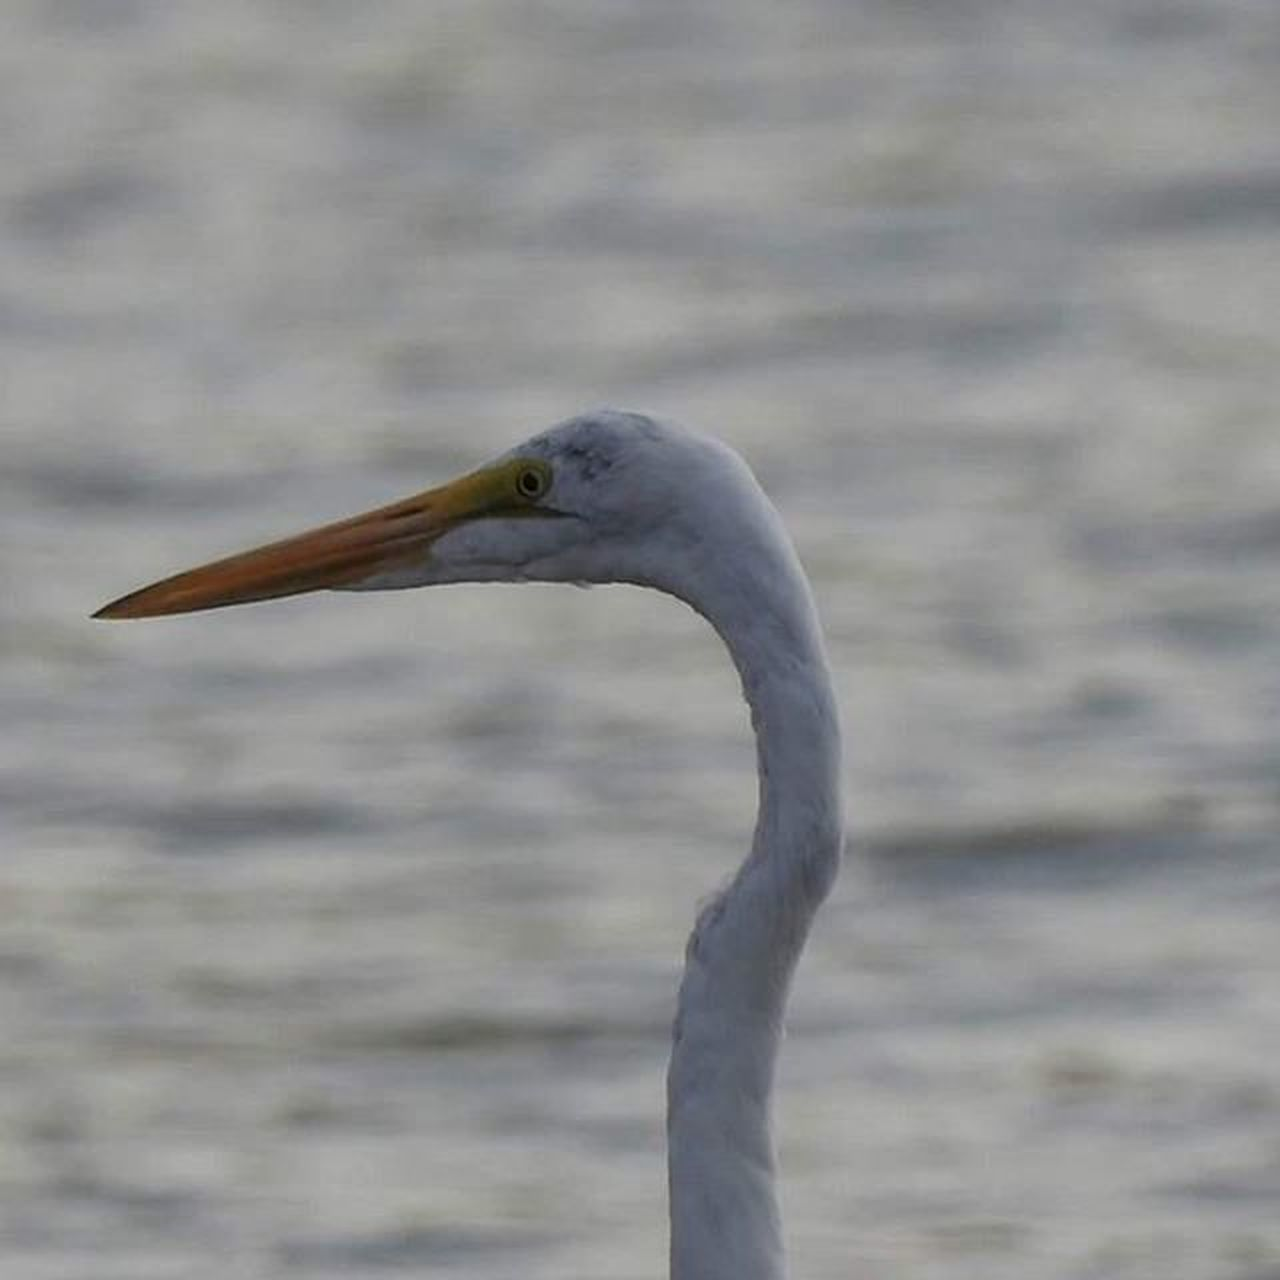 one animal, bird, animals in the wild, animal wildlife, animal themes, day, beak, heron, focus on foreground, nature, no people, outdoors, water, close-up, beauty in nature